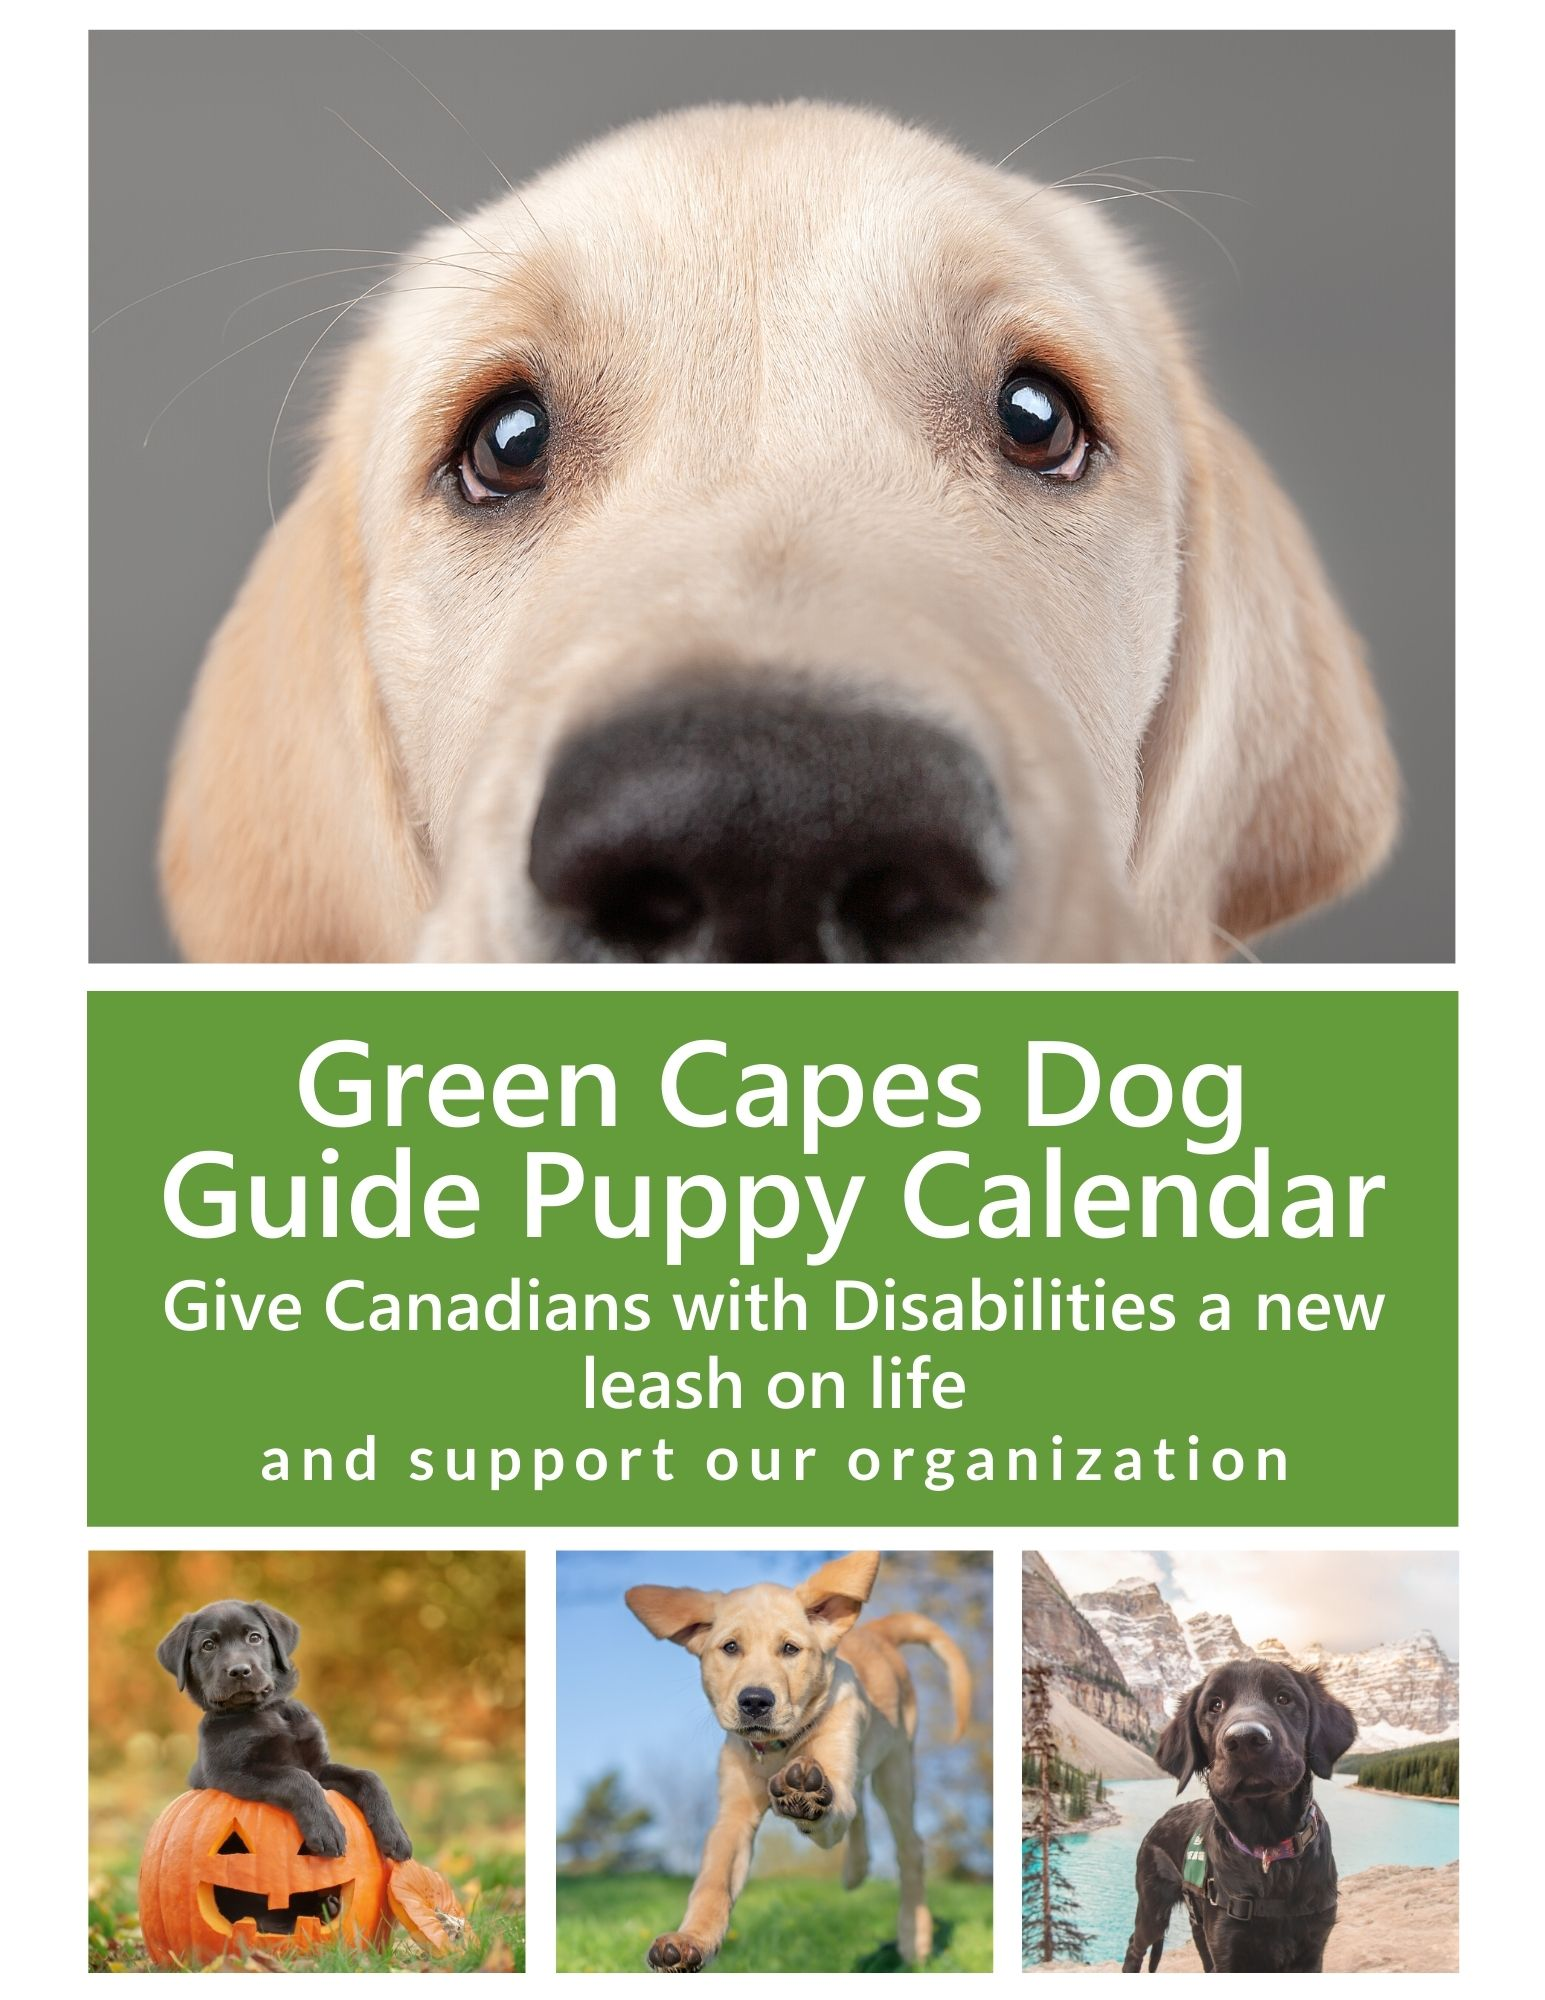 Yellow Lab Puppy beside text that says Dog Guide Puppy Calendar